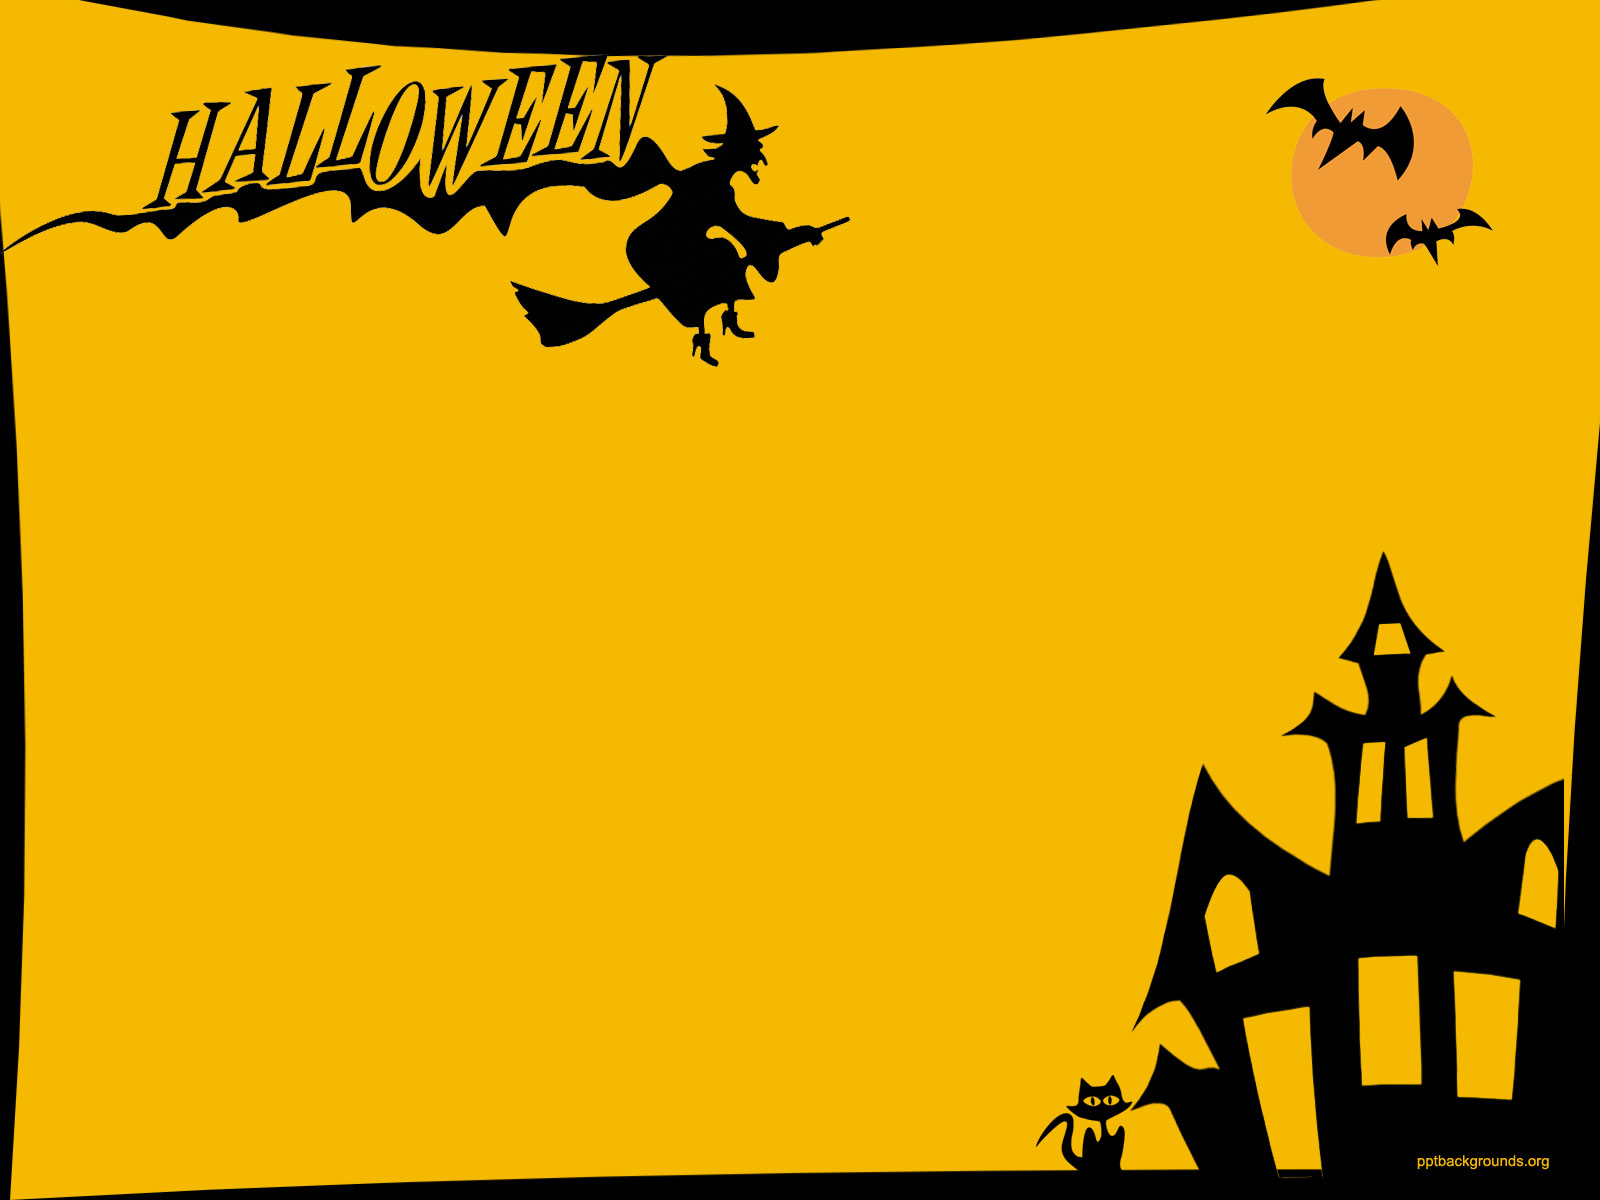 Happy Halloween Backgrounds For PowerPoint   Holiday PPT Templates 1600x1200